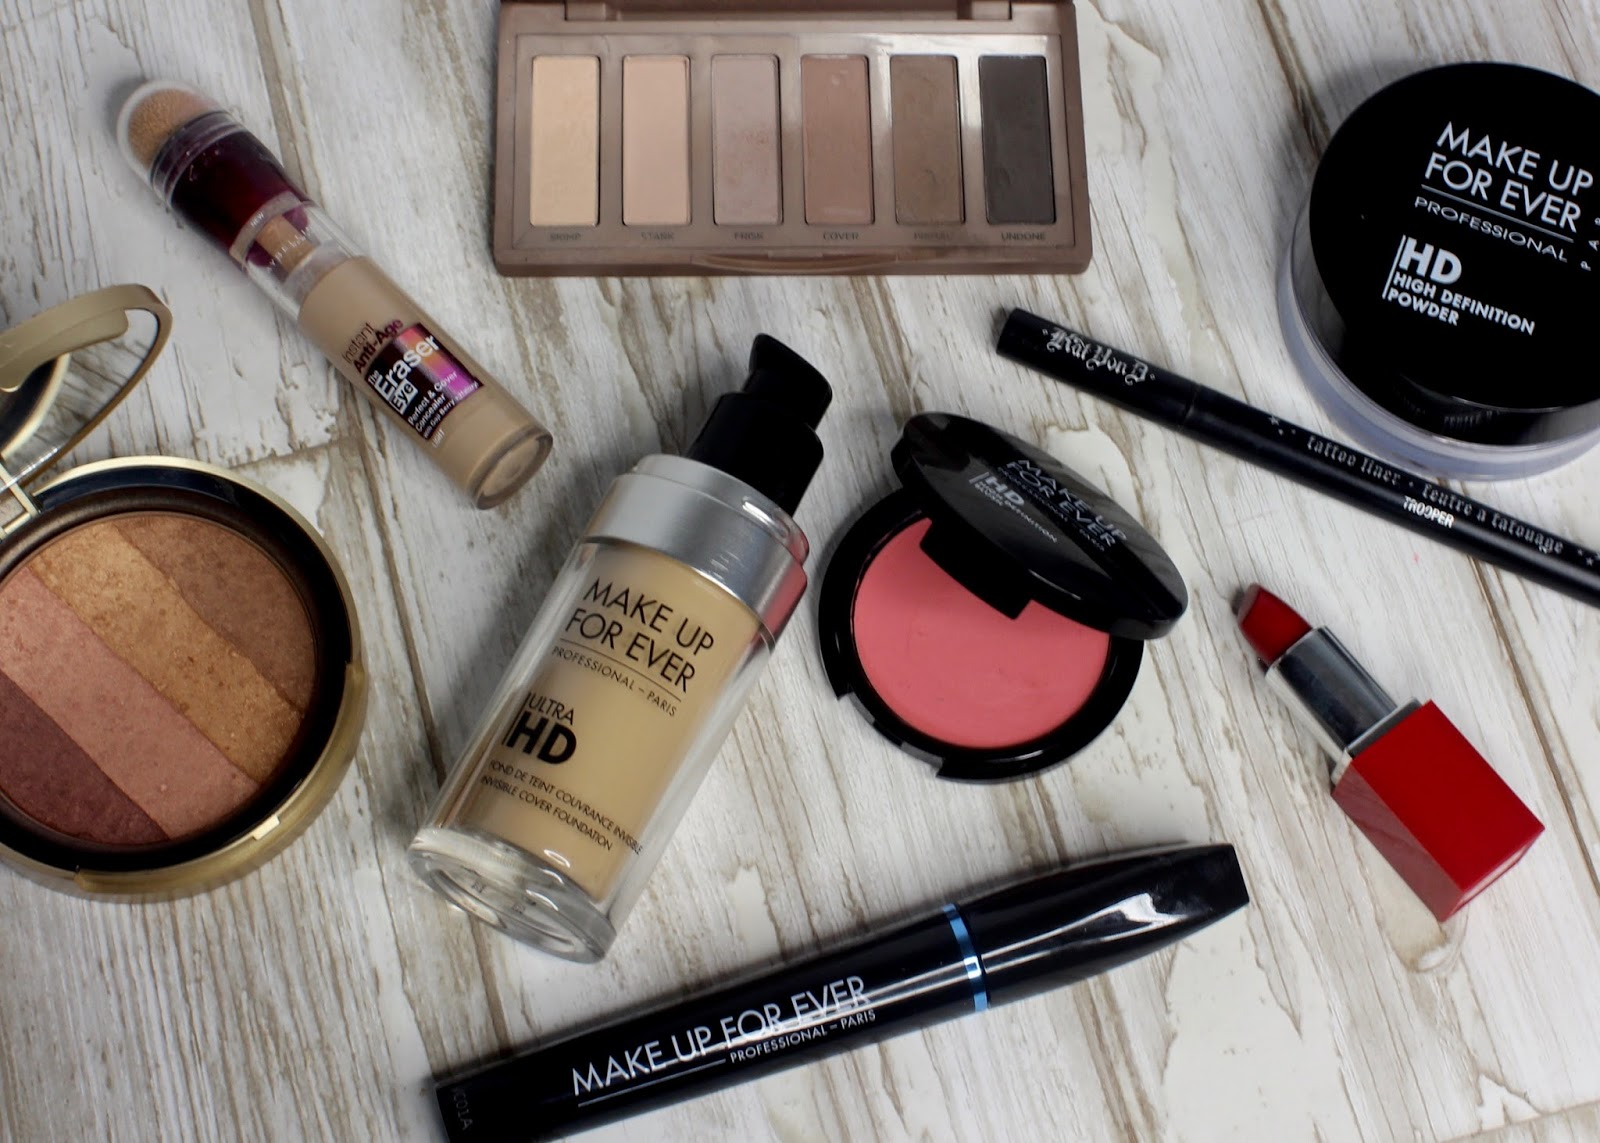 Make Up For Ever originally introduced their HD foundation in response to advances in technology meaning that HD cameras and TVs were showing skin in ...